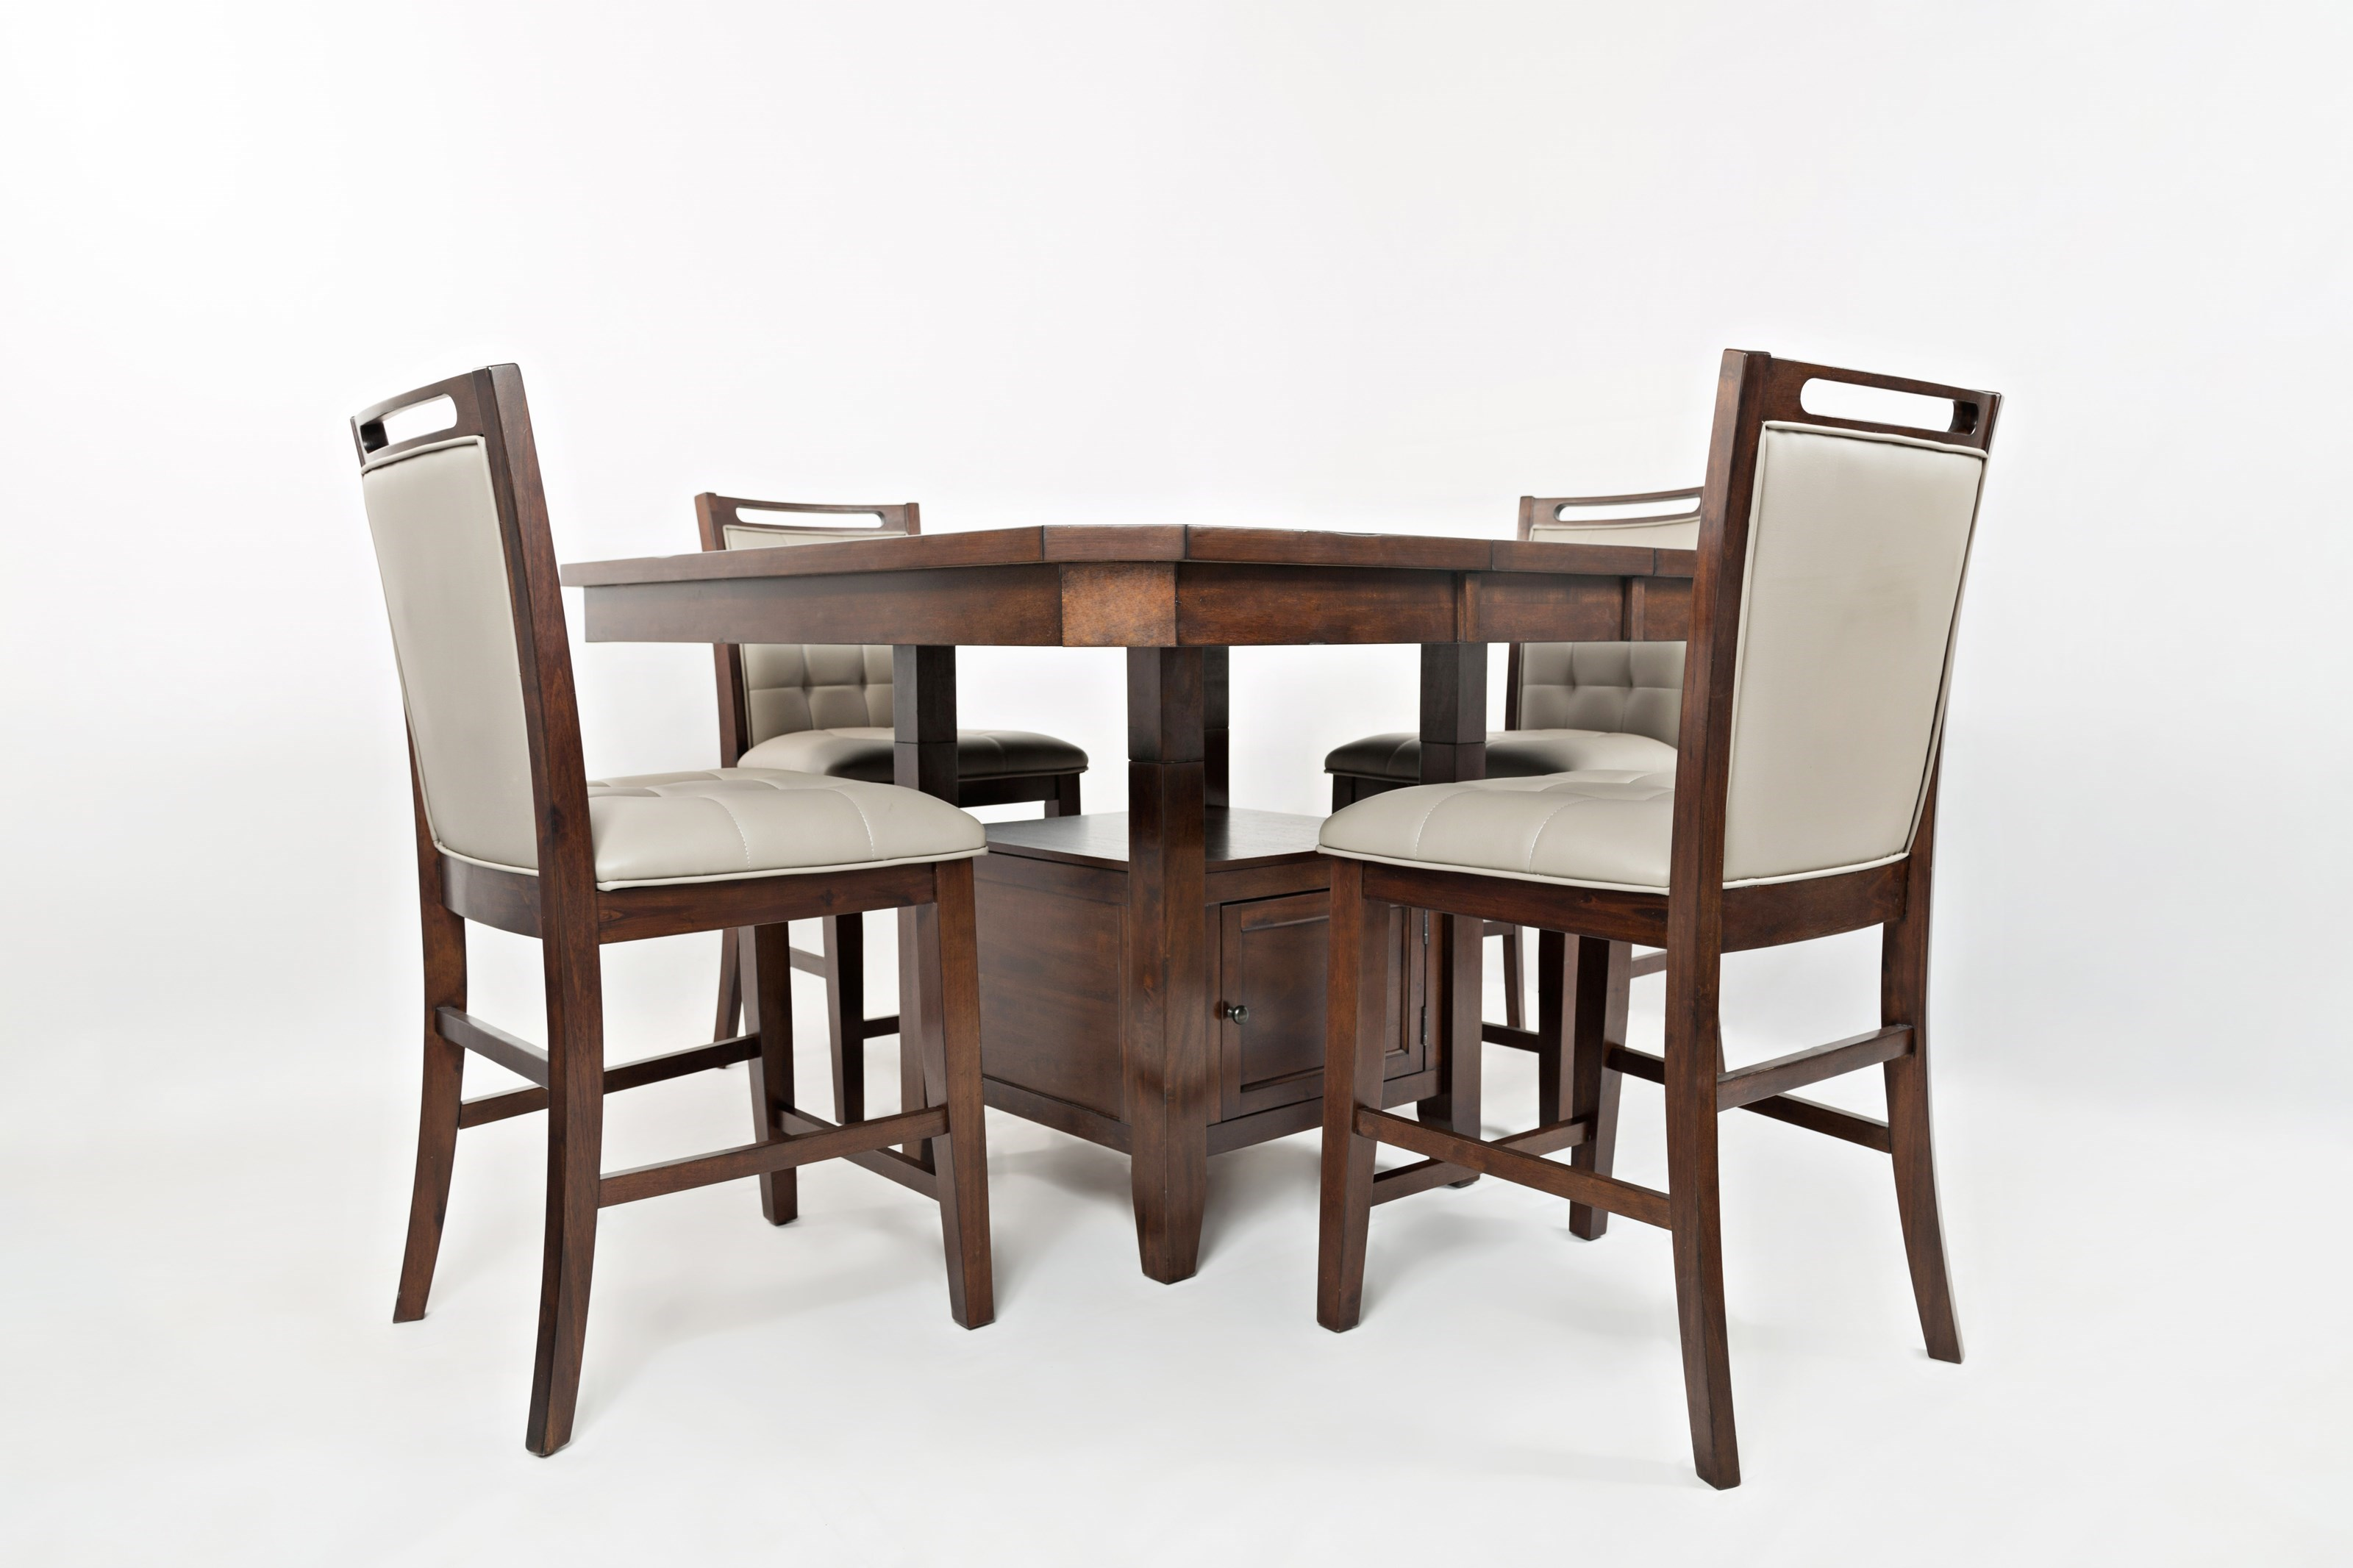 Jofran Manchester Counter Height Dining Set 4 People  : products2Fjofran2Fcolor2Fmanchester 3524365071672 54tbkt2B4xbs385kd b1jpgscalebothampwidth500ampheight500ampfsharpen25ampdown from www.jofran.com size 500 x 500 jpeg 26kB